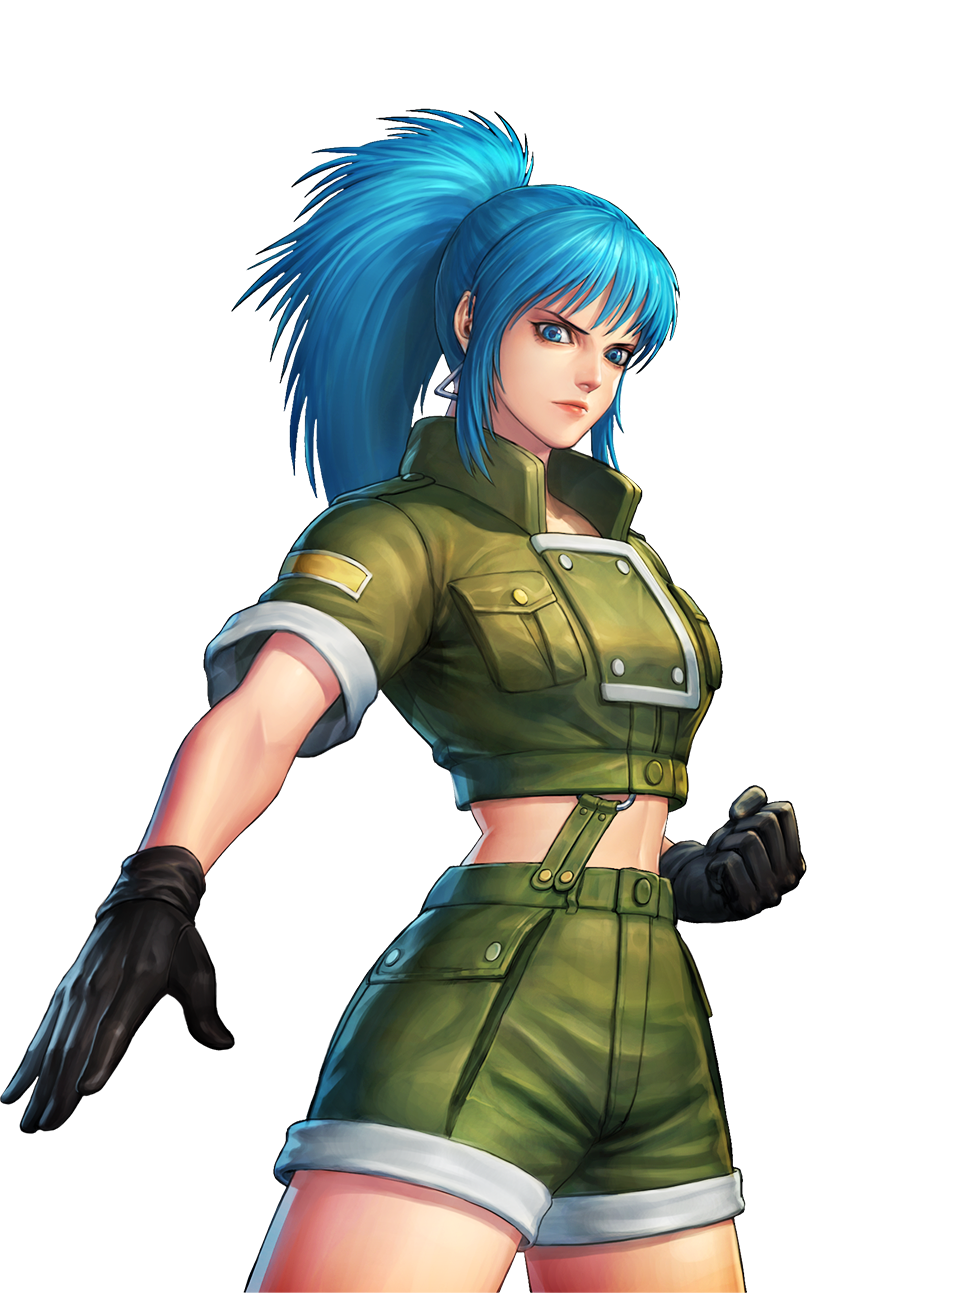 Kof All Star Leona Heidern By Abloodyrose 4 Cys On Deviantart